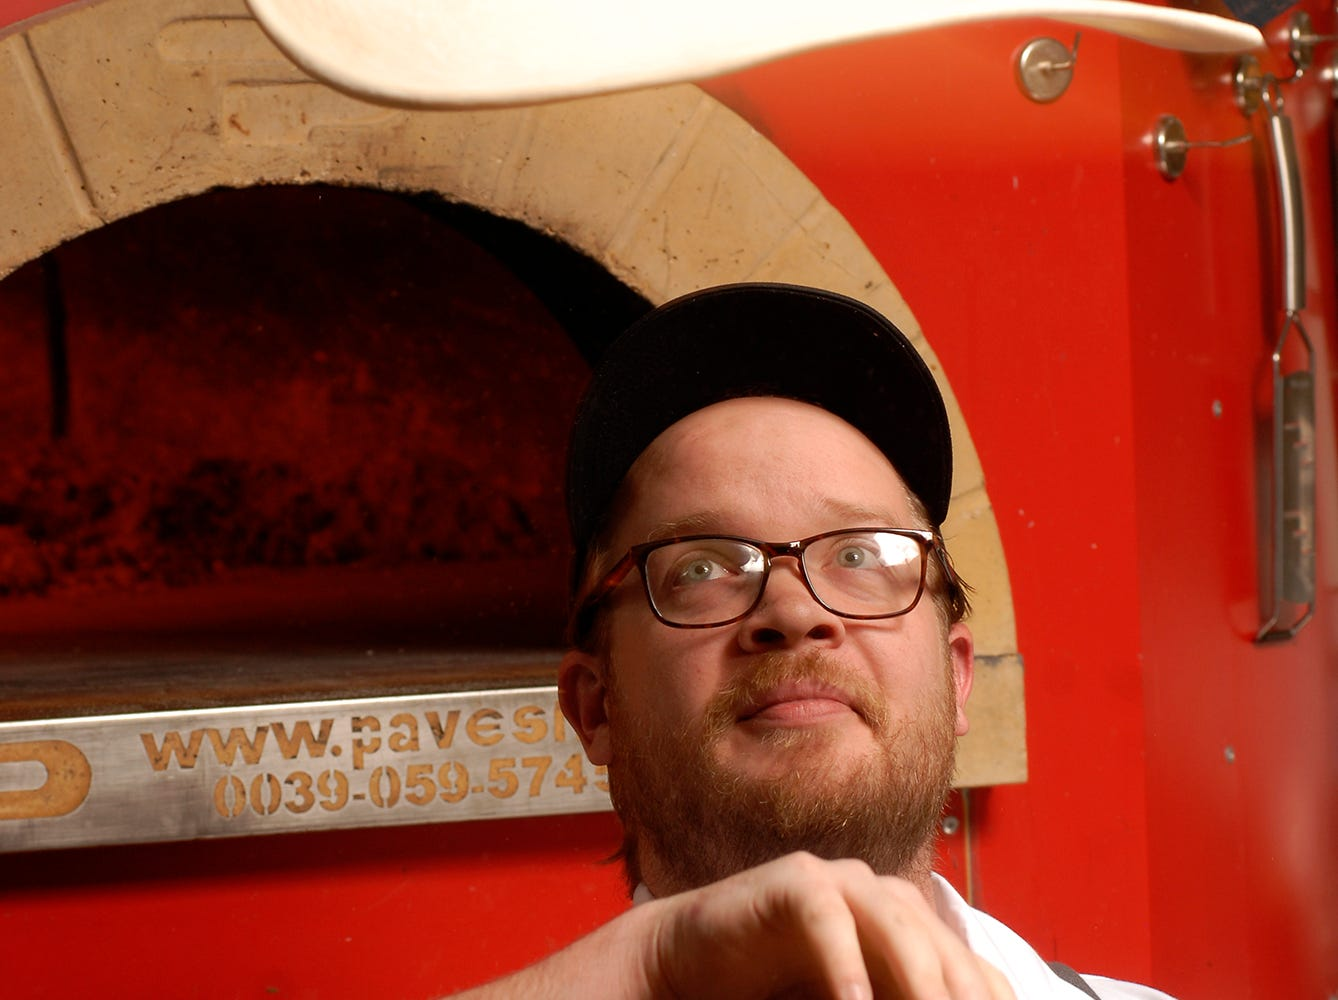 Chef Max Balliet tosses pizza dough while posing for a portrait.  He specializes in handmade pastas and wood-fired pizzas at Pizza Lupo located at 1540 Frankfort Ave.  Nov. 16, 2018